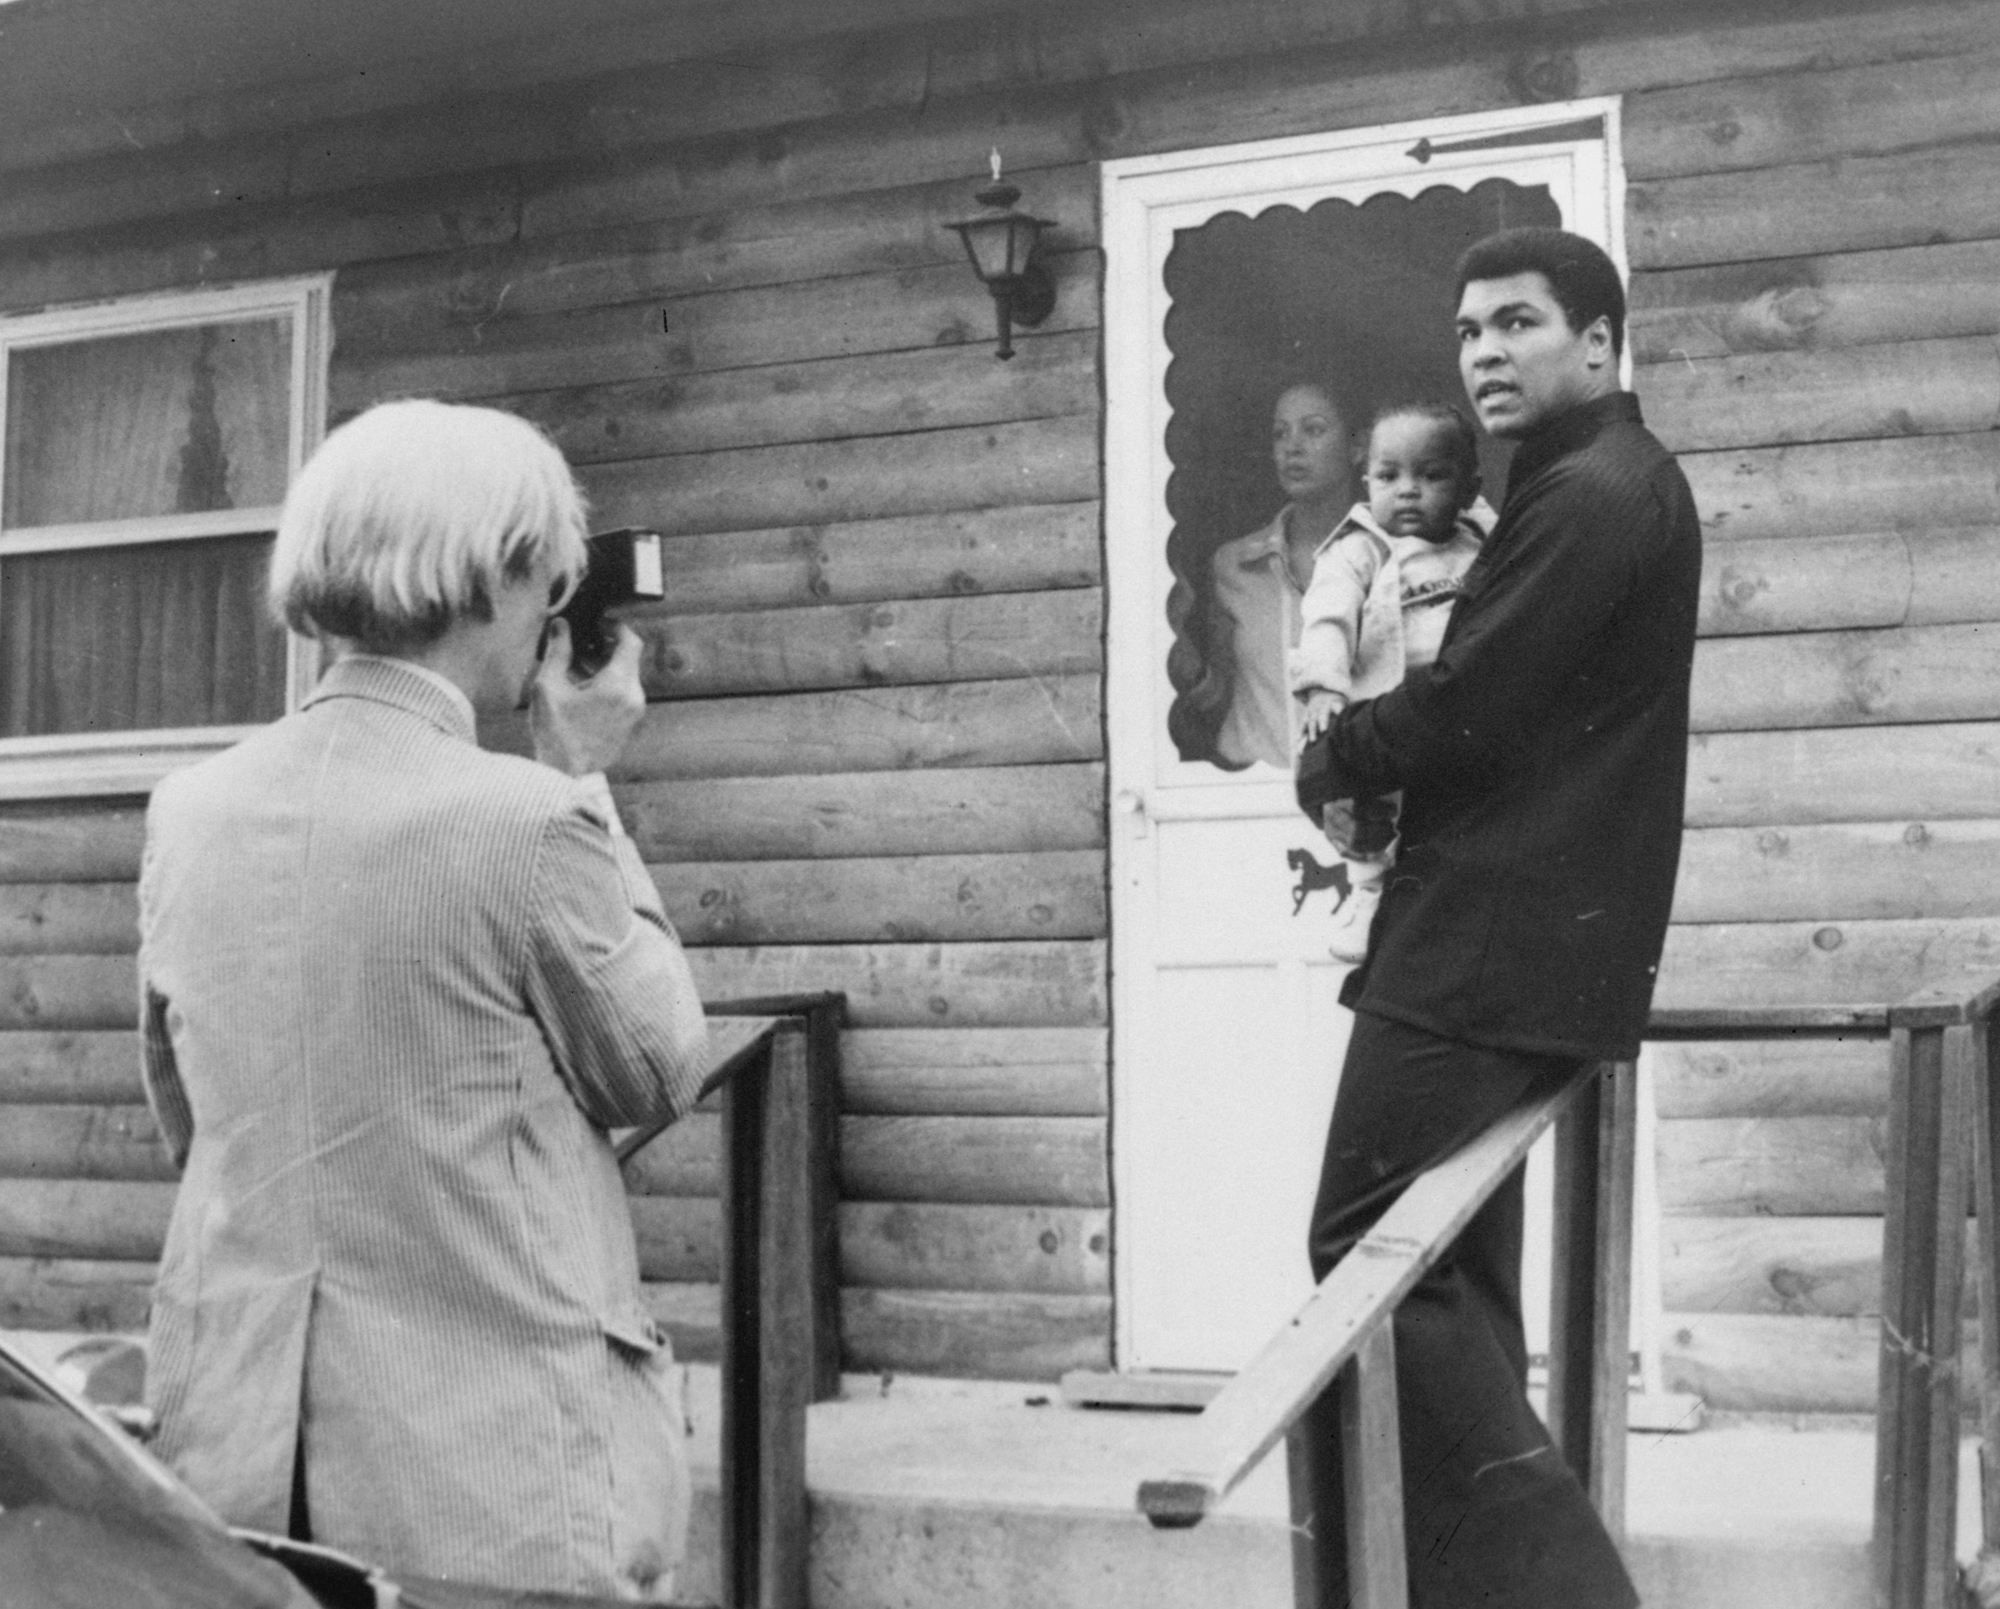 Pop artist Andy Warhol, left, is shown photographing Muhammad Ali, his infant daughter, Hanna, and wife, Veronica, Thursday, August 18, 1977, at Ali´s training camp in Deer Lake, Pa. (AP Photo)